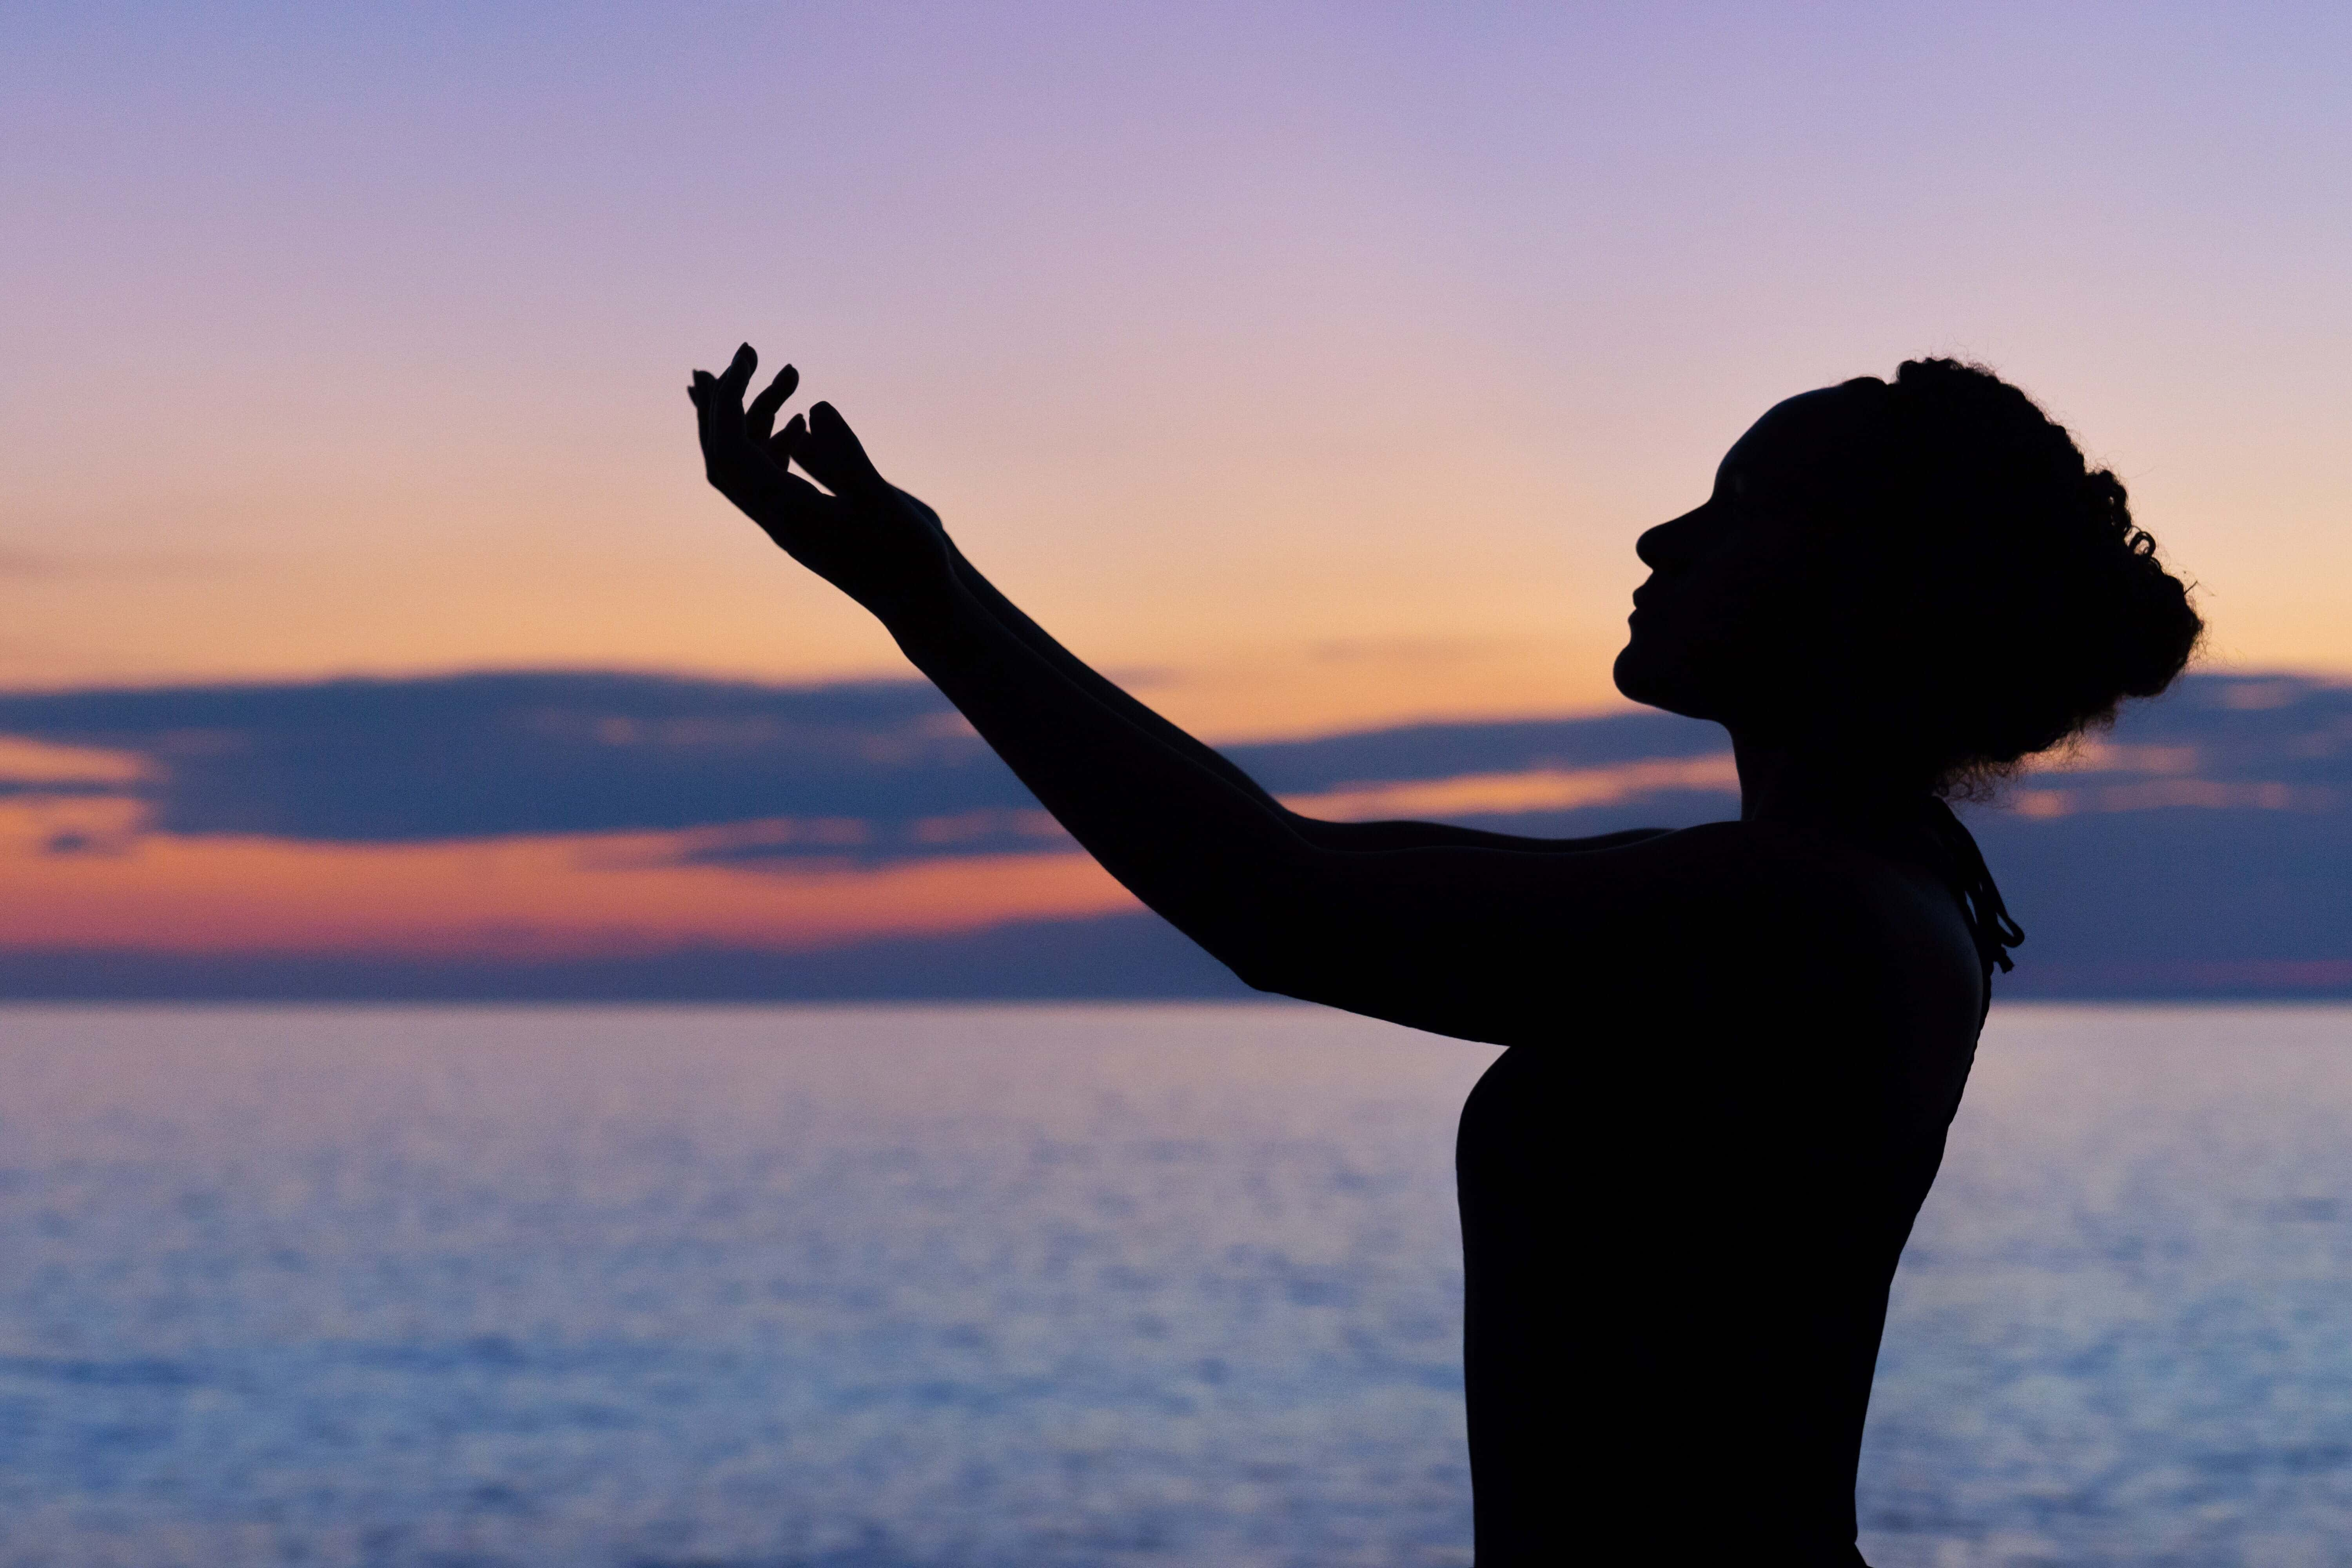 Silhouette of woman practising yoga in front of the sea.